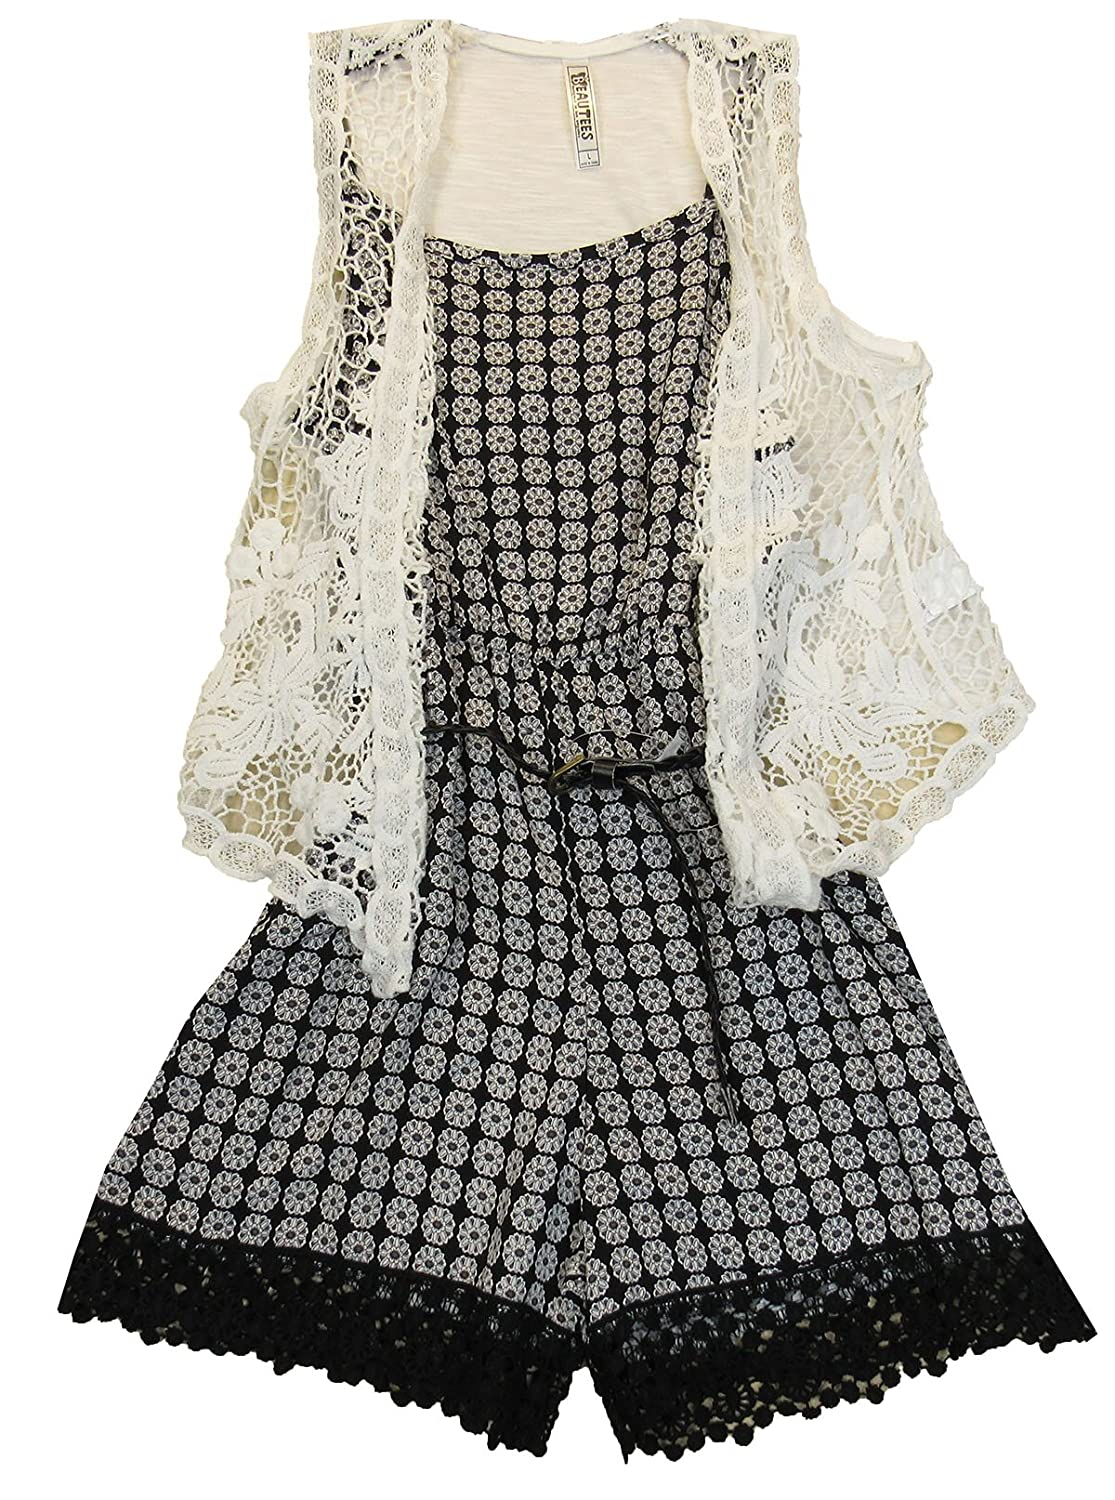 a21345f2f05 Beautees Big Girls (7-16) 2-Pc. Romper and Crocheted Vest